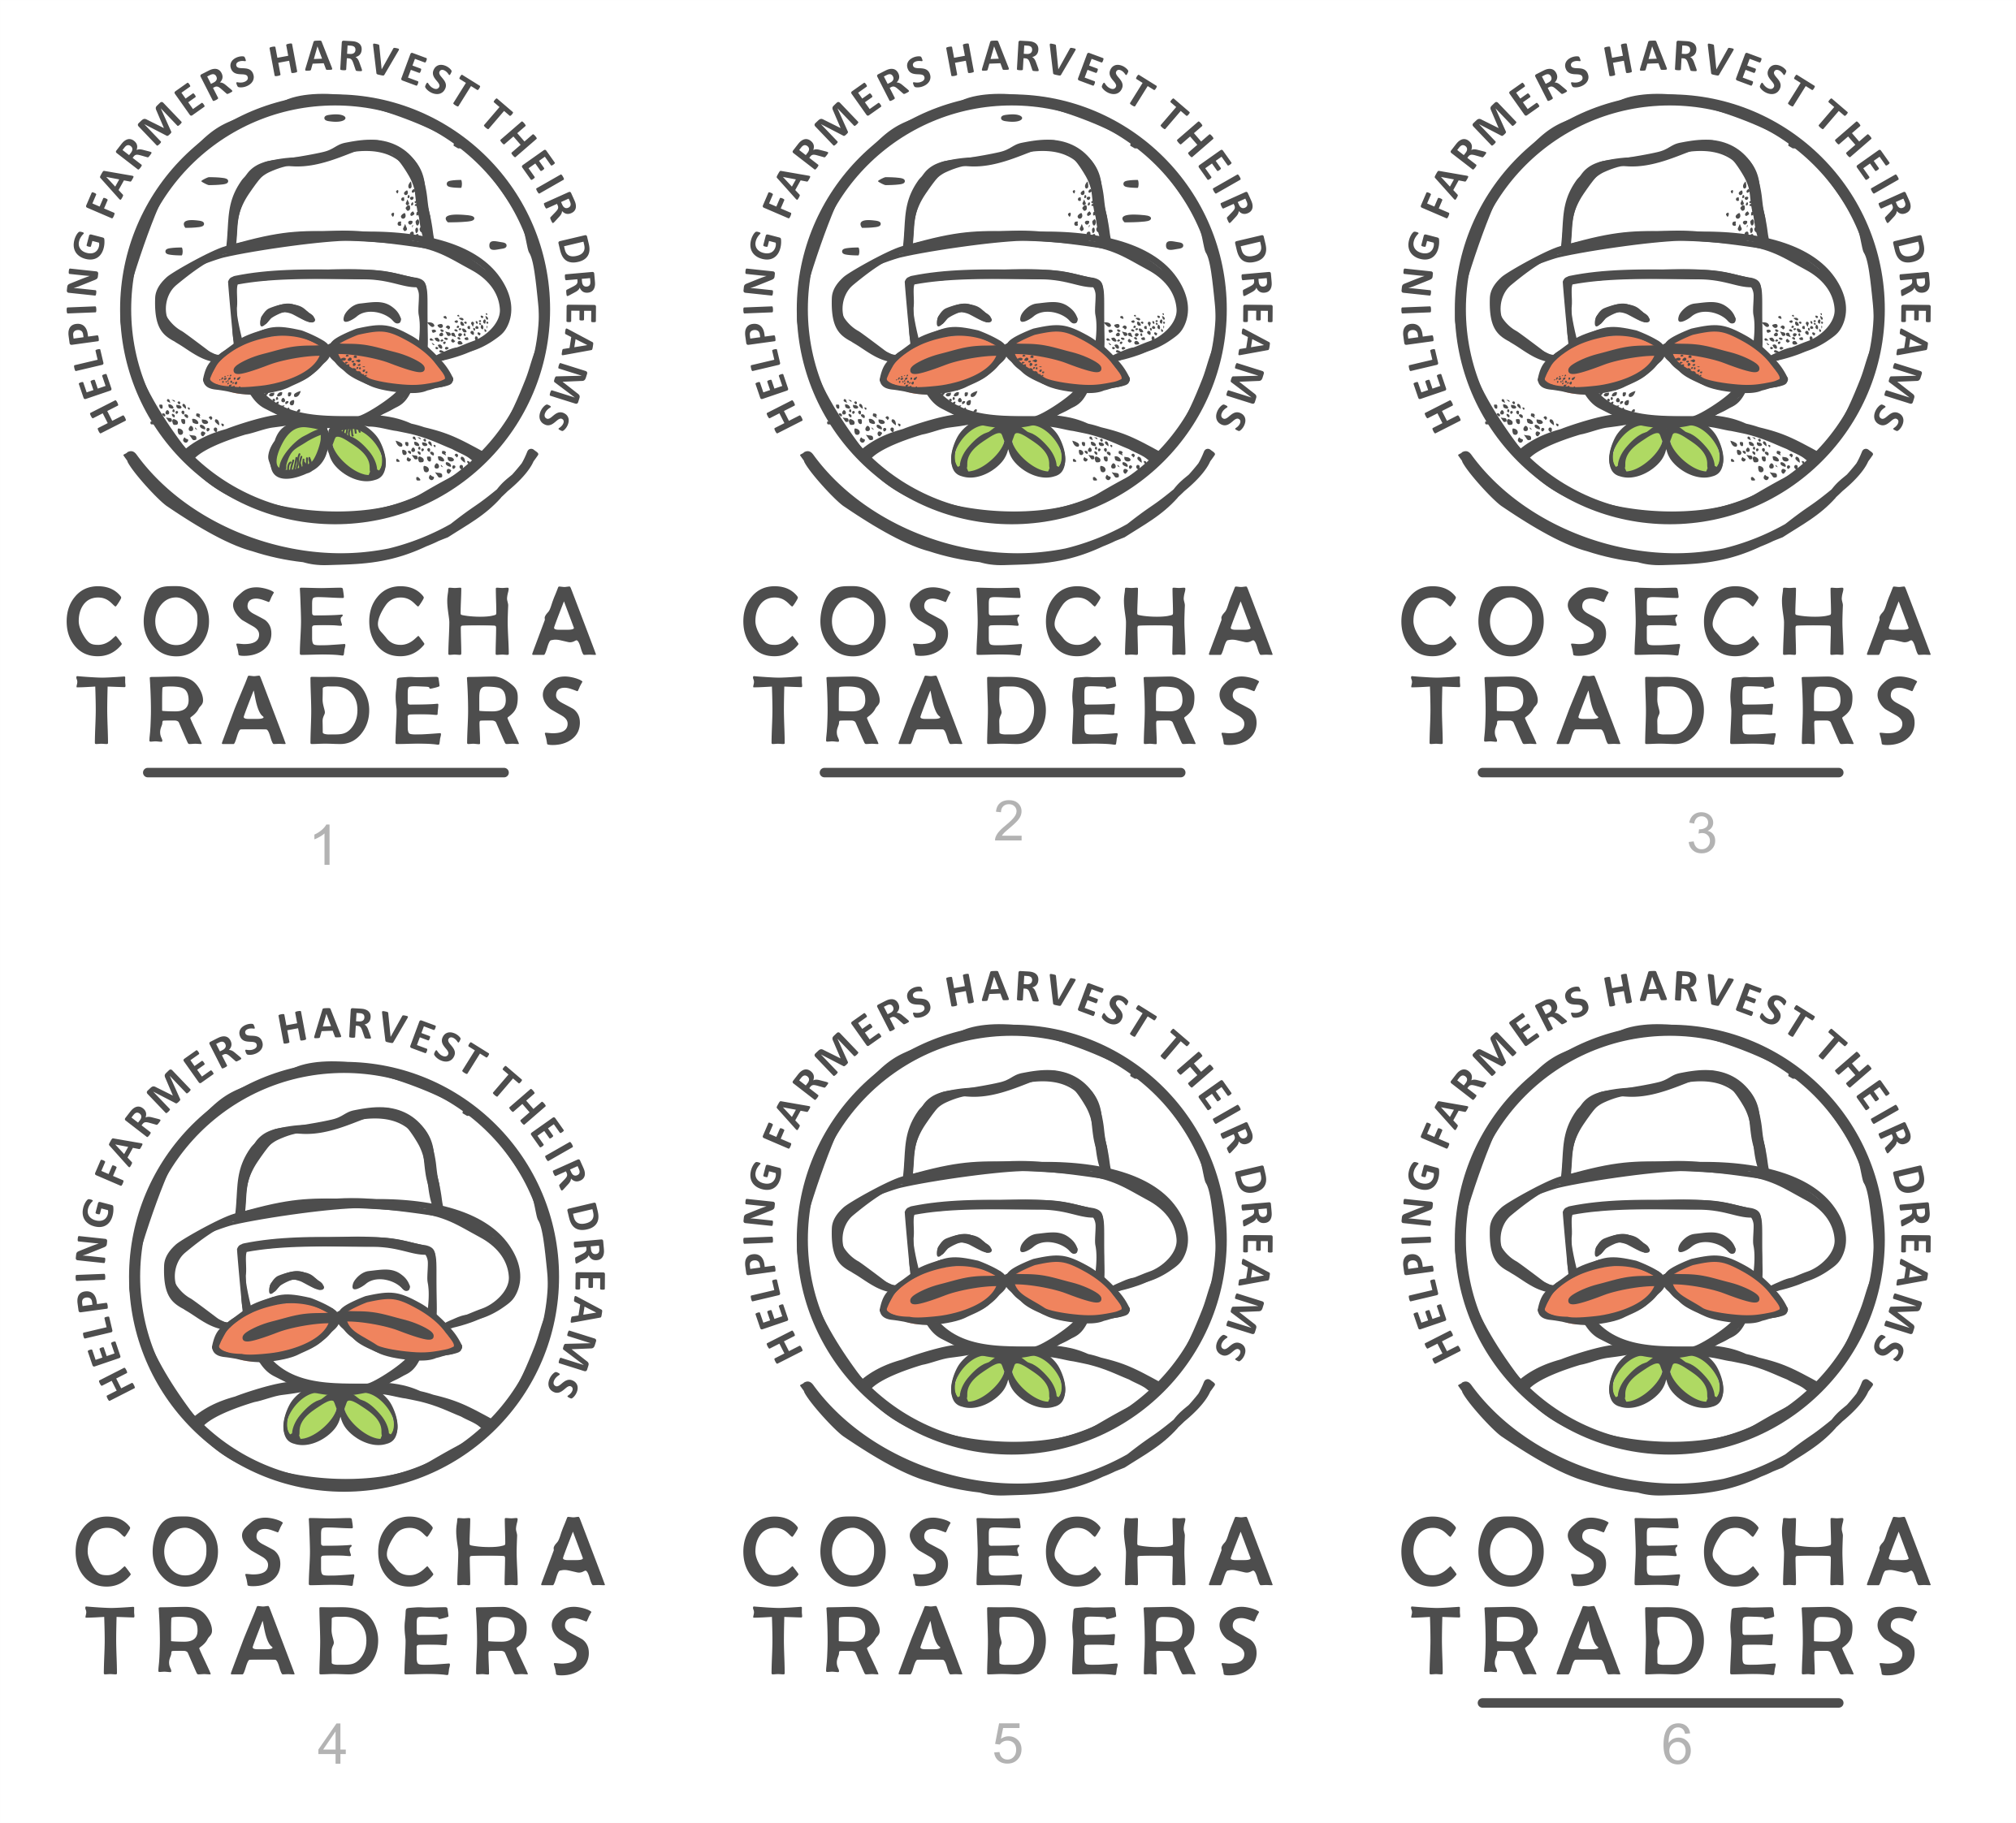 Design identity for company that connects cocoa and coffee farmers in Colombia with international buyers